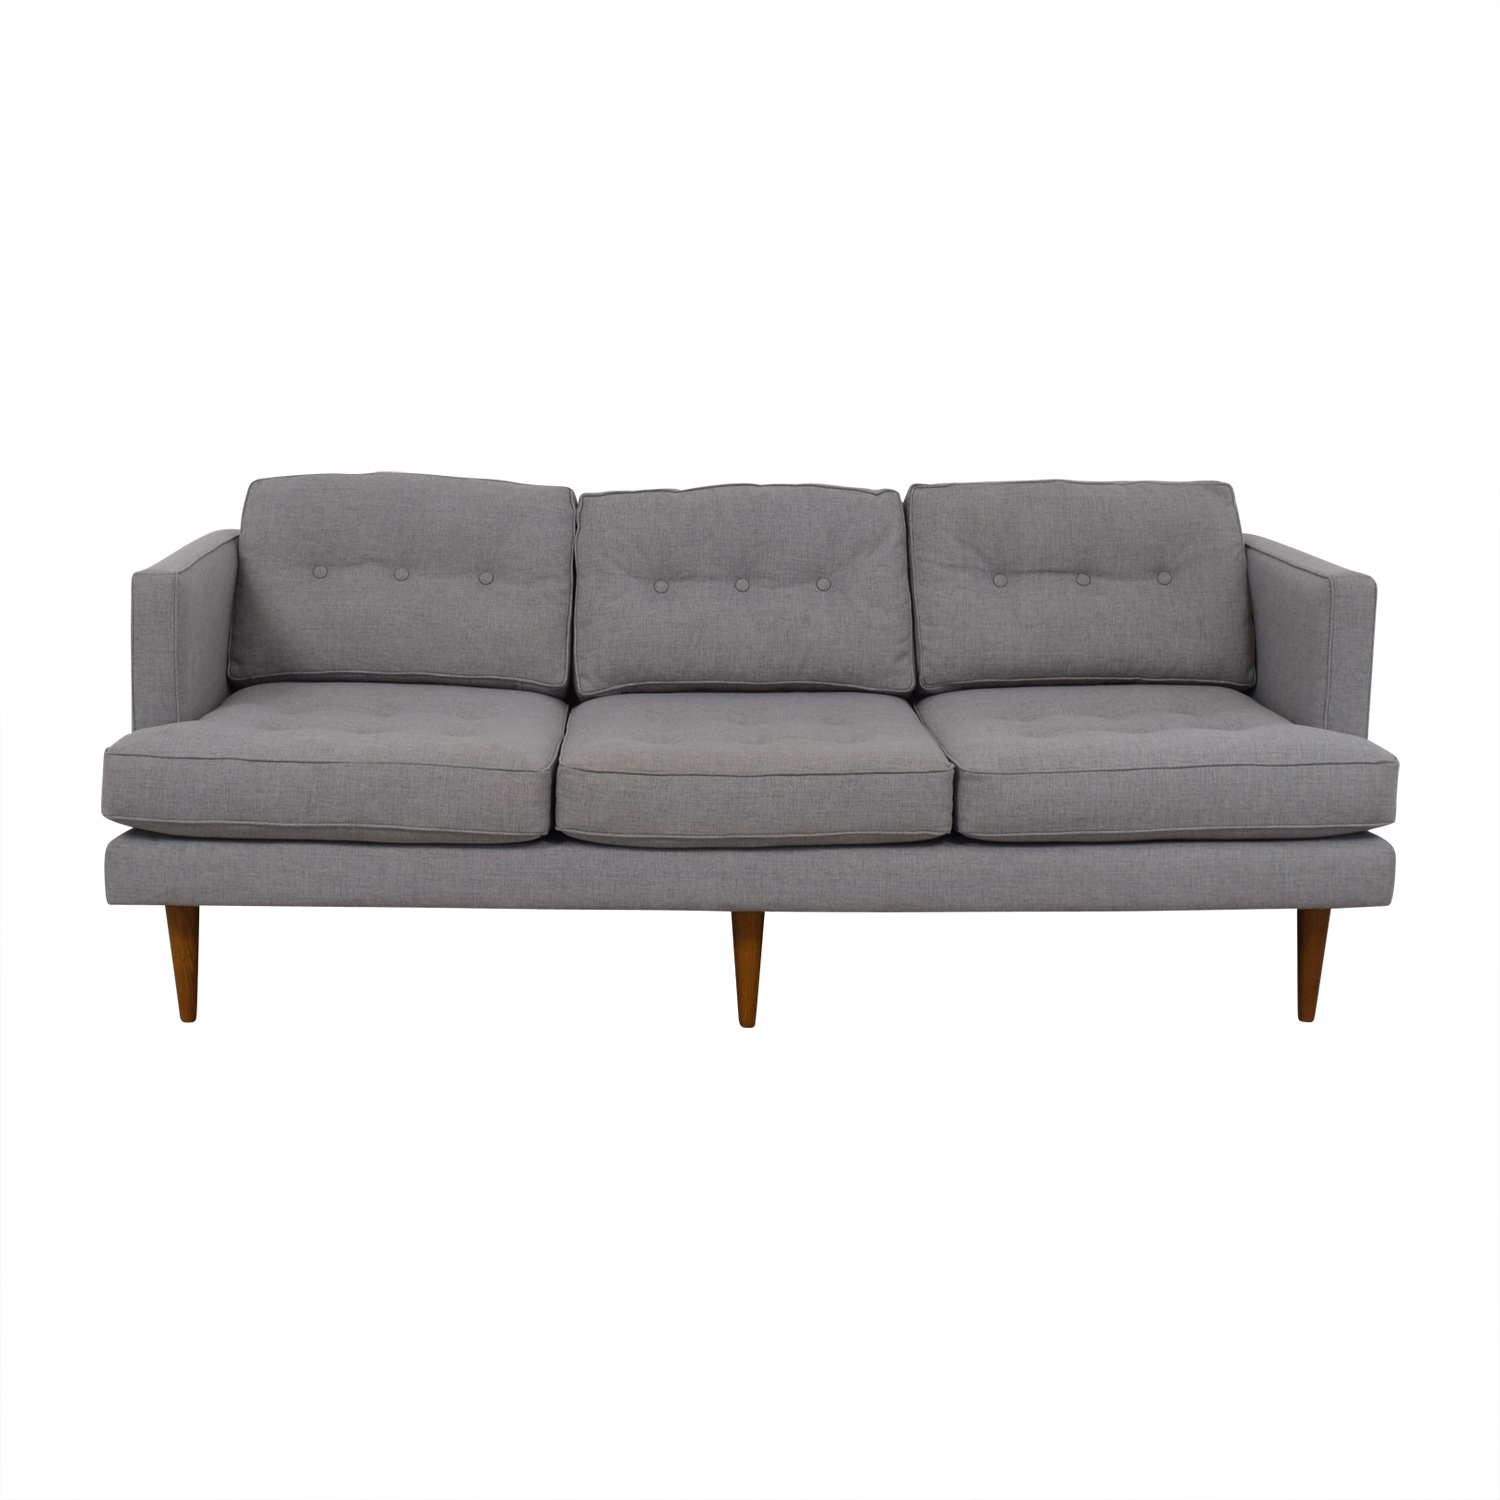 West Elm Peggy Feather Gray Heathered Crosshatch Tufted Sofa sale